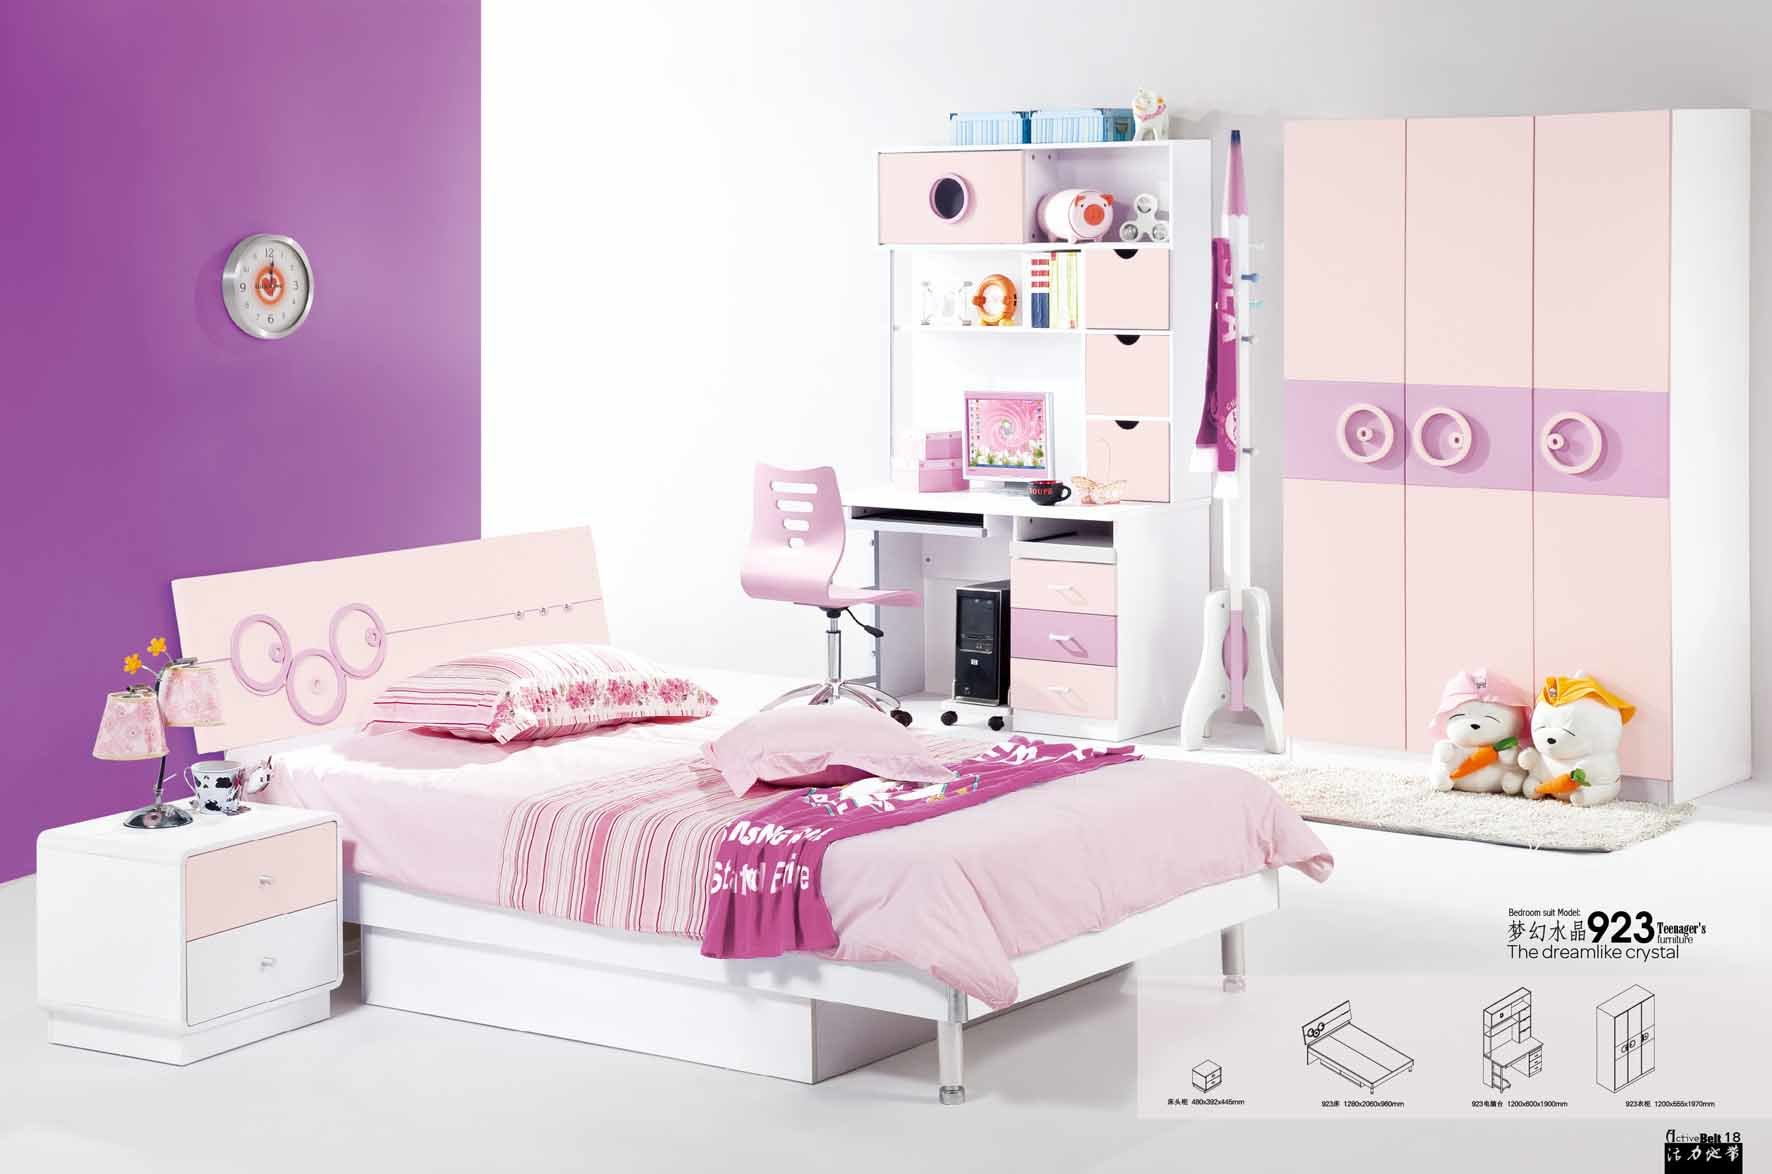 Princess toddler beds for girls authentic princess carriage bed design for girlsjpg toddler Baby bedroom furniture sets